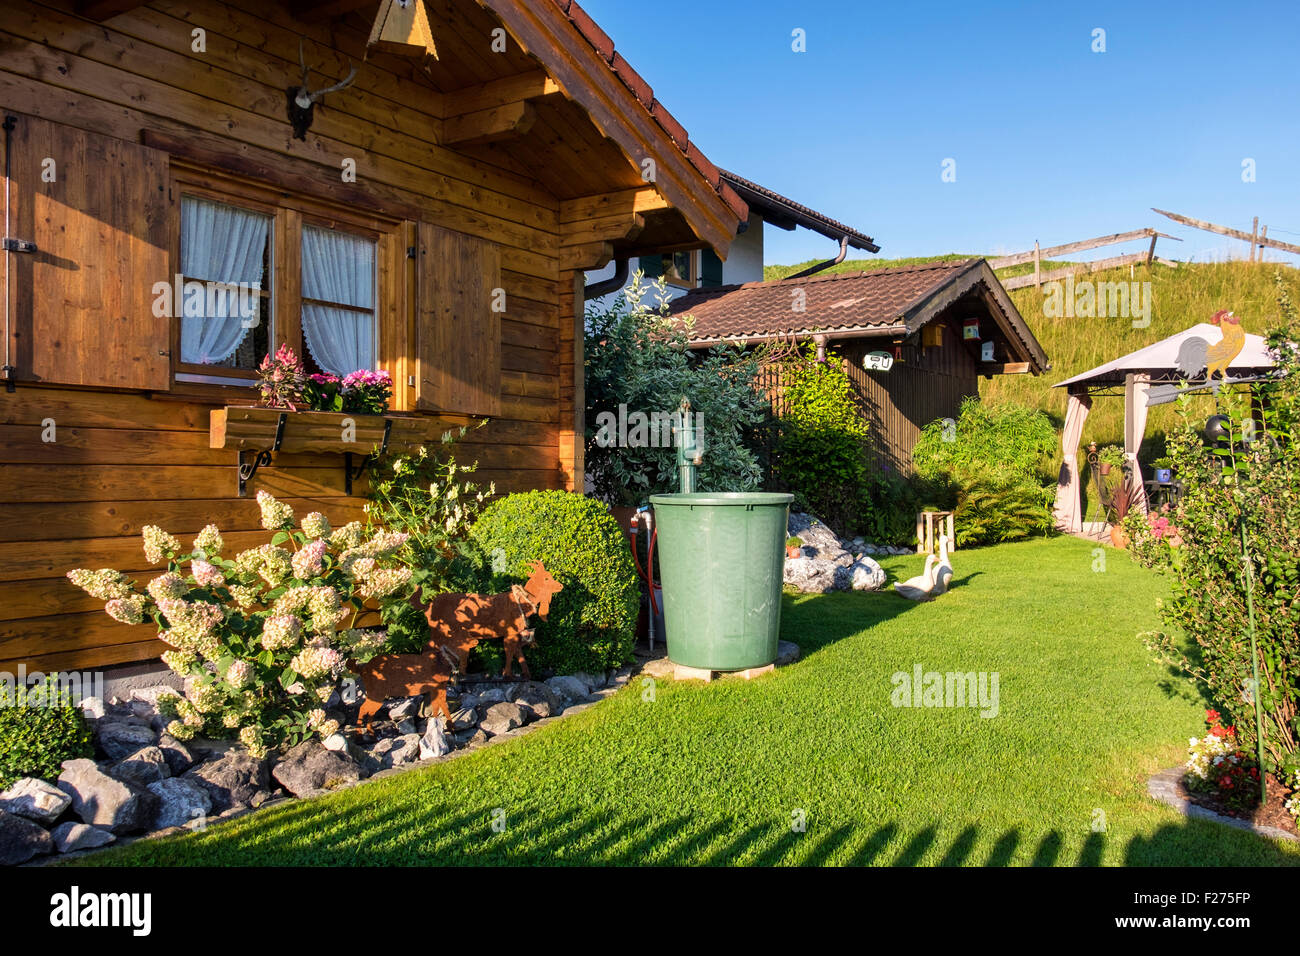 Germany bavaria typical wooden house exterior and garden for Outside house ornaments